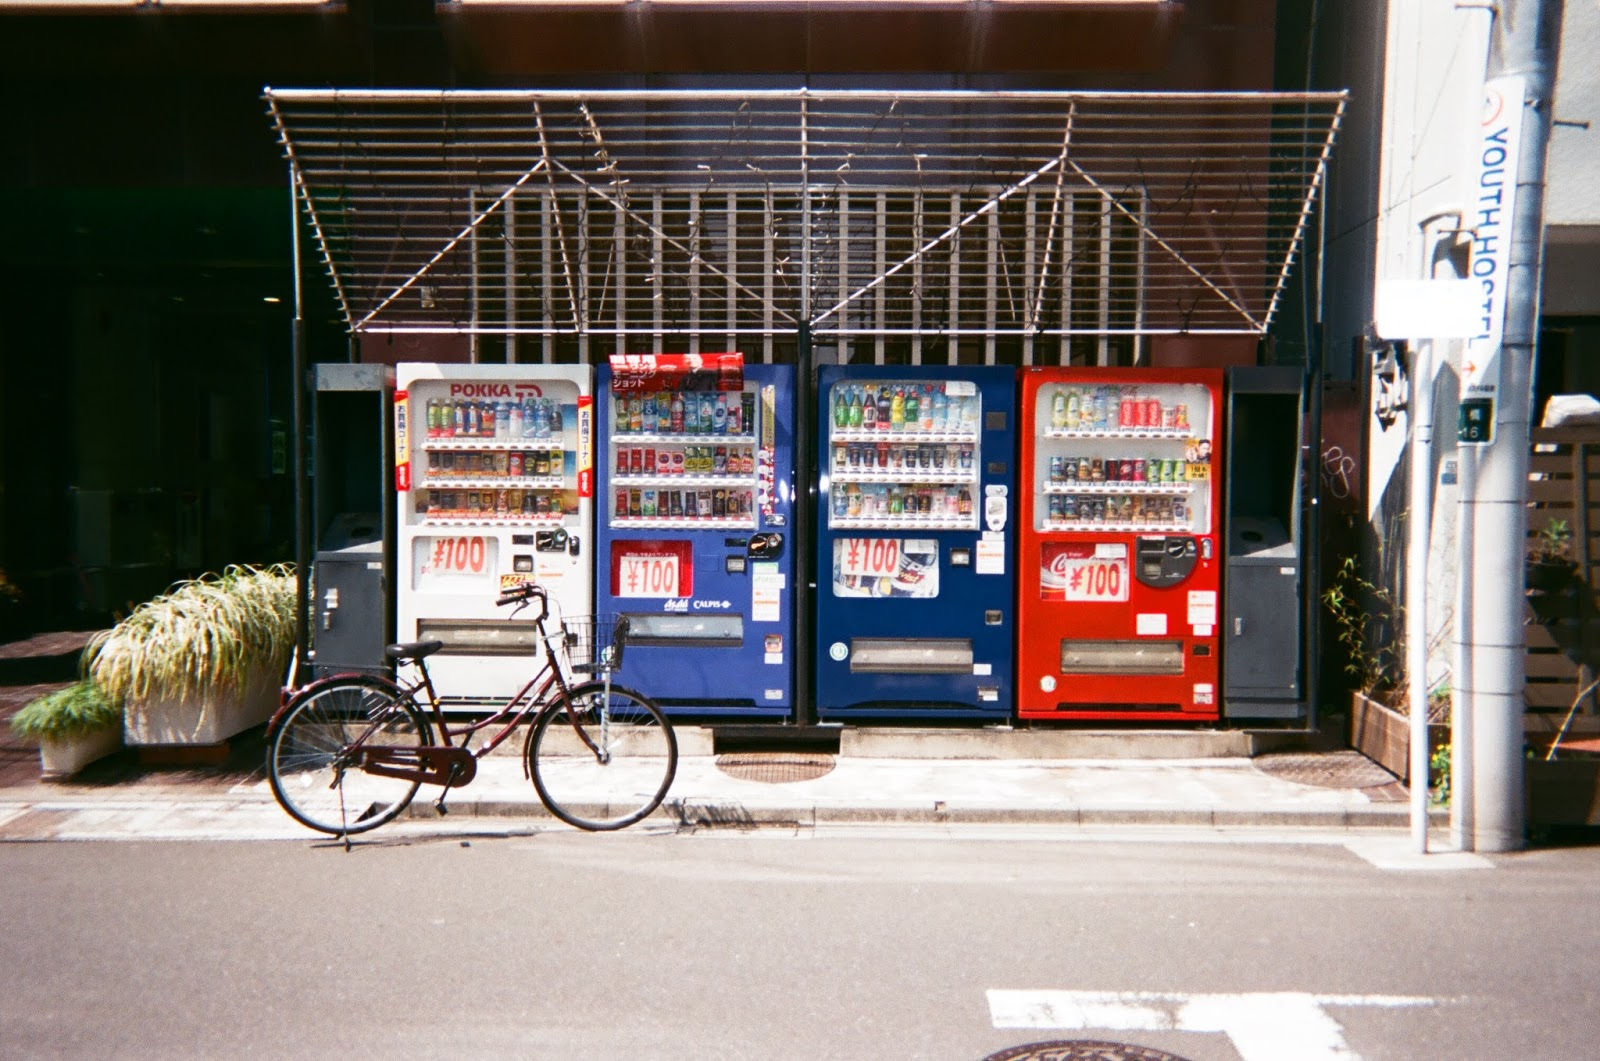 Tokyo in Disposable Camera Vending Machine | www.bigdreamerblog.com